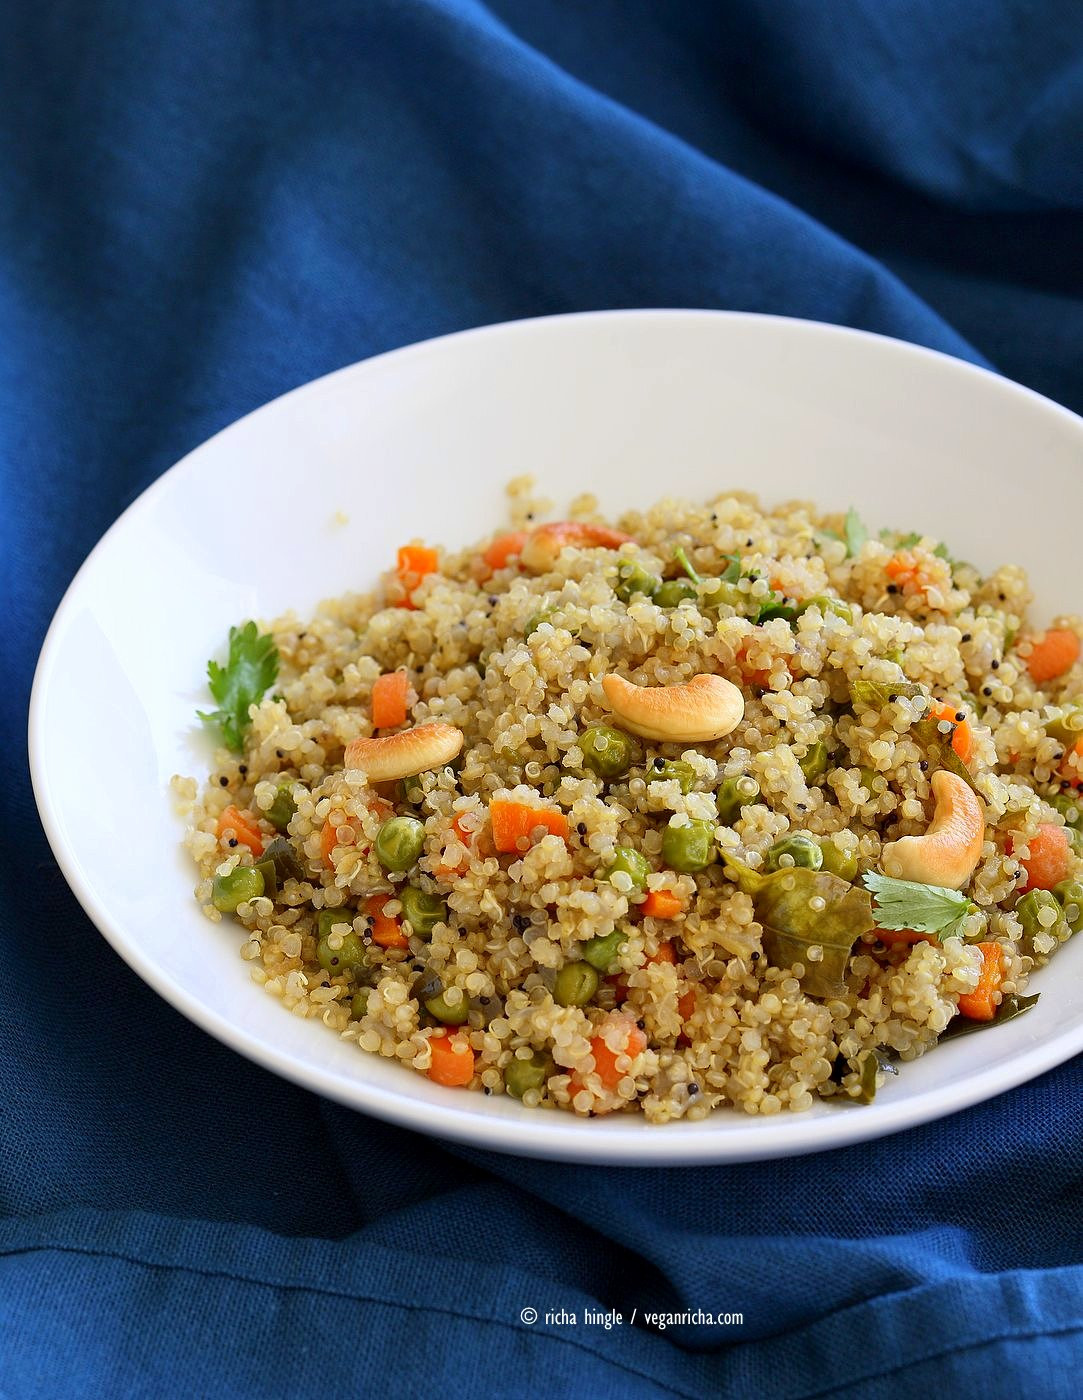 Quinoa Indian Recipes  Quinoa Upma Recipe Quinoa with Spices Carrots and Peas